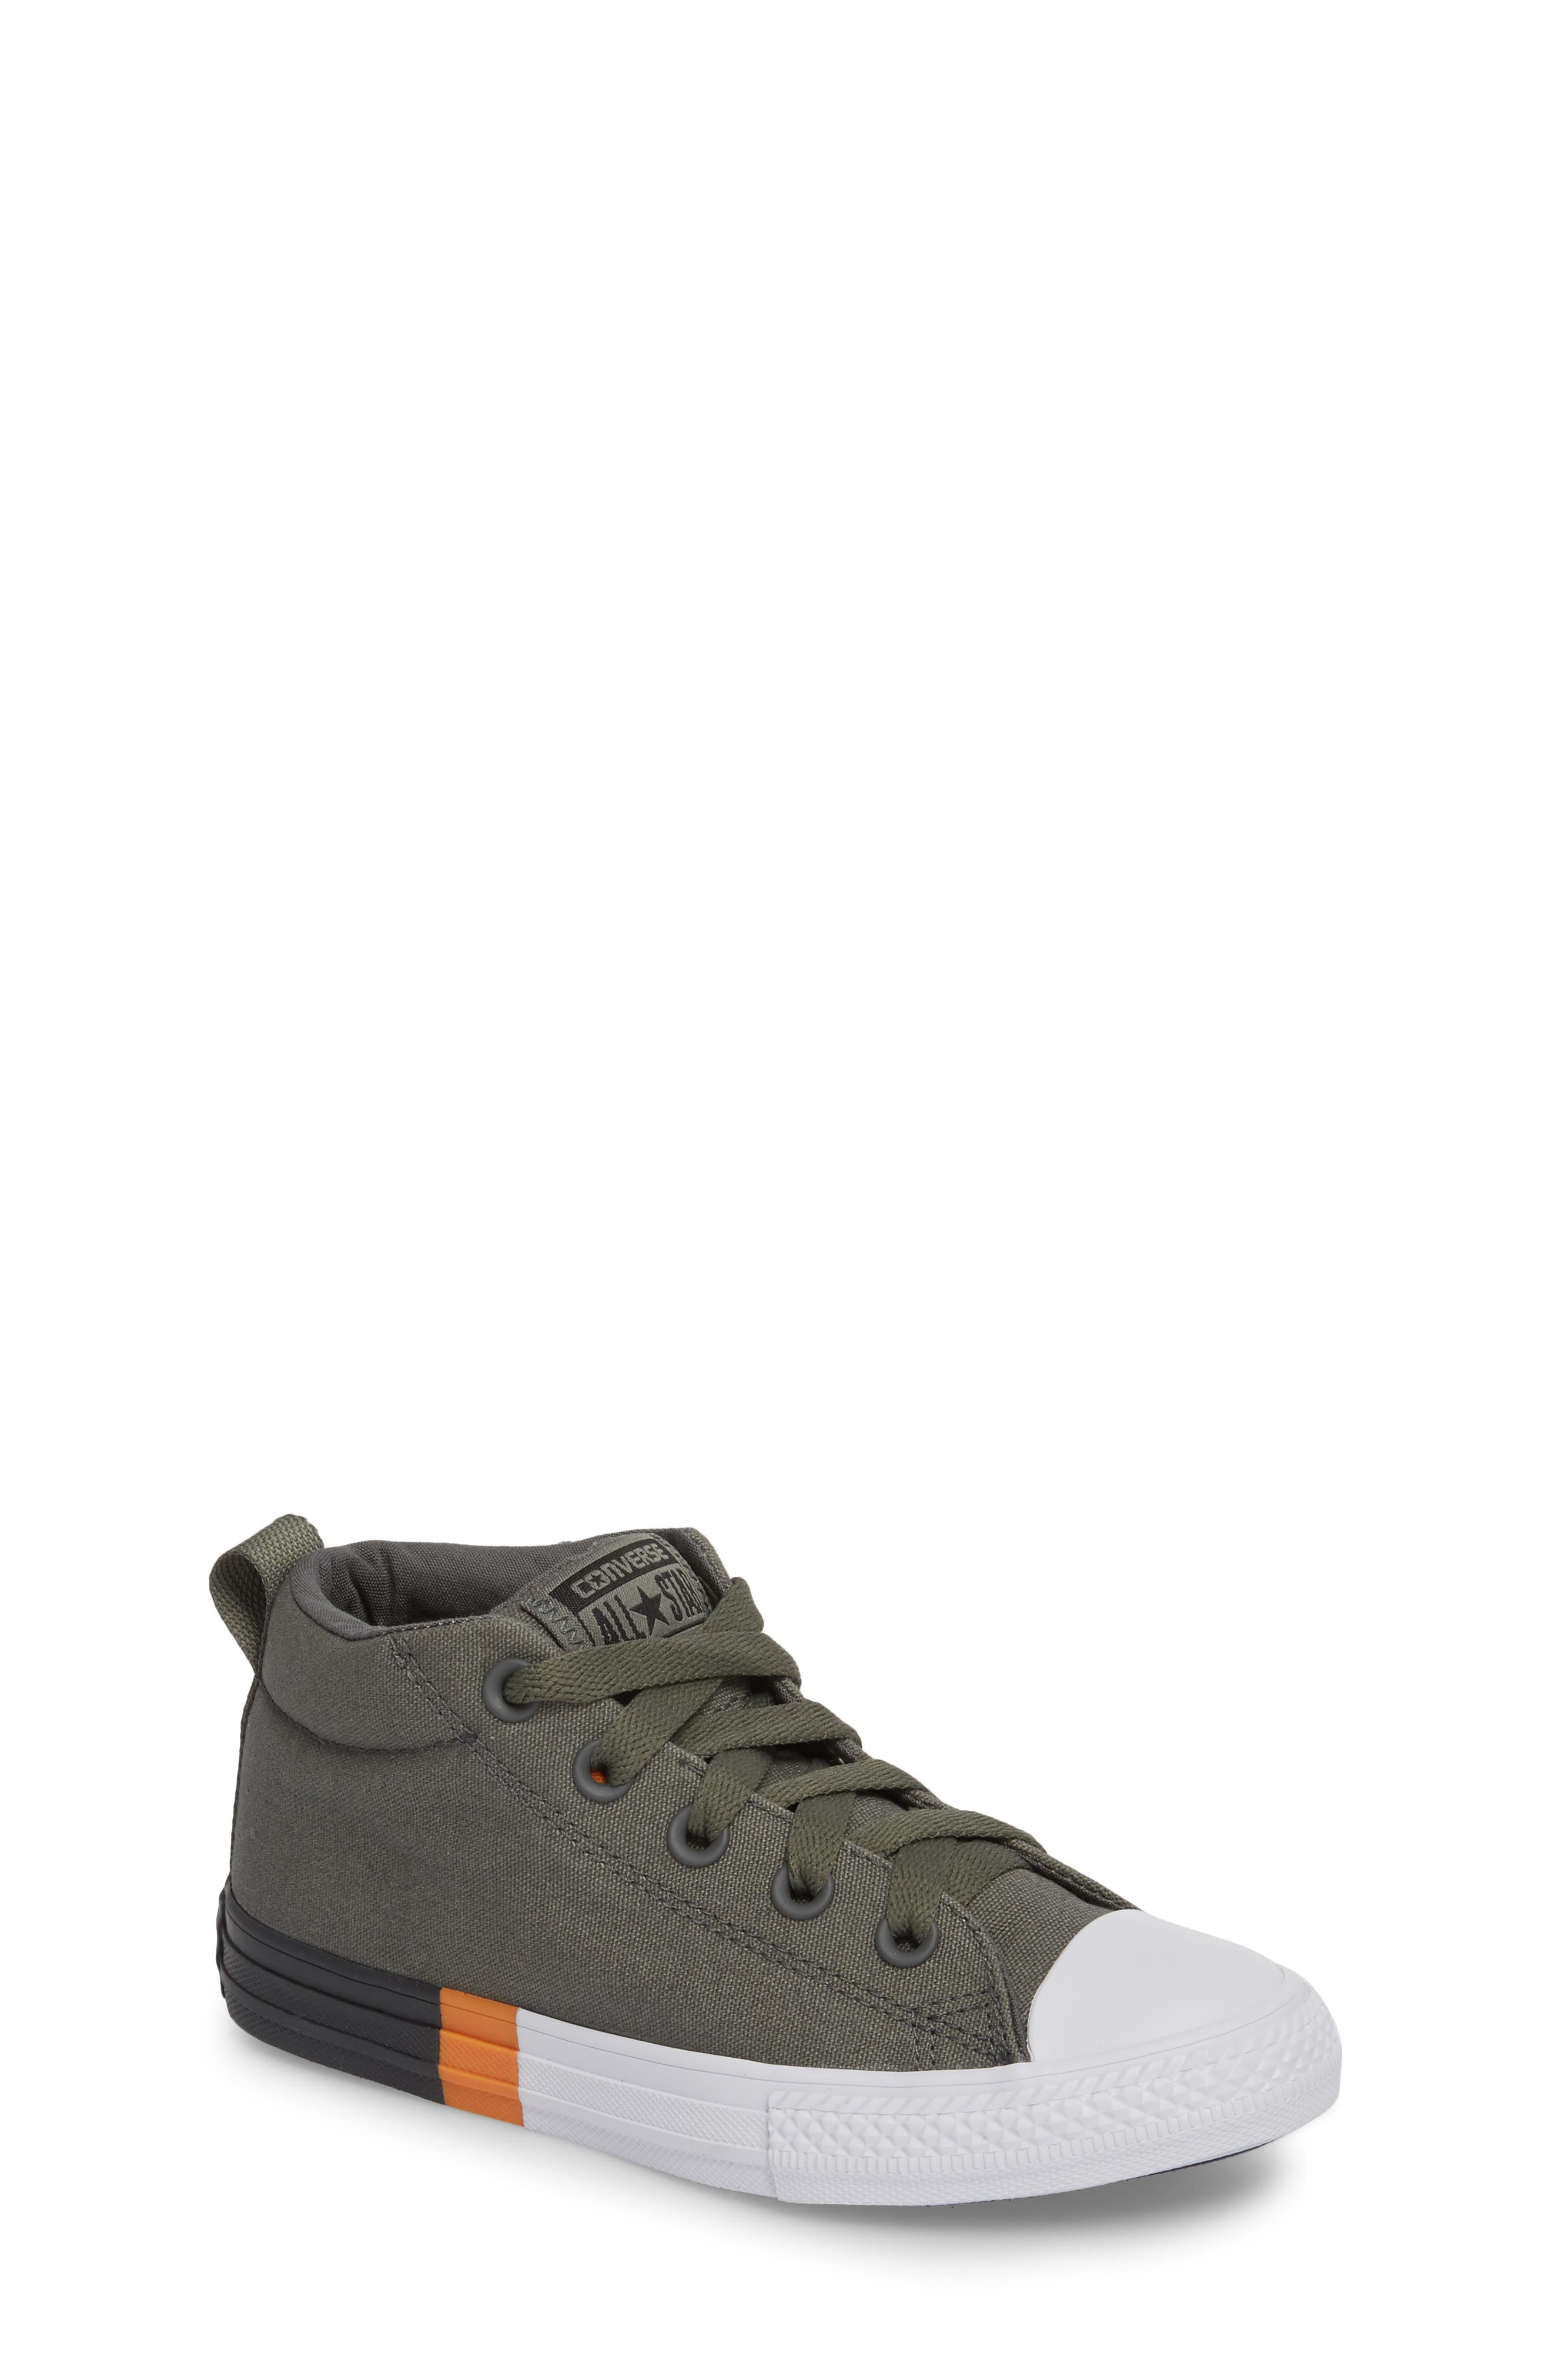 Chuck Taylor<sup>®</sup> All Star<sup>®</sup> Street Colorblock Mid Top Sneaker,                             Main thumbnail 1, color,                             River Rock